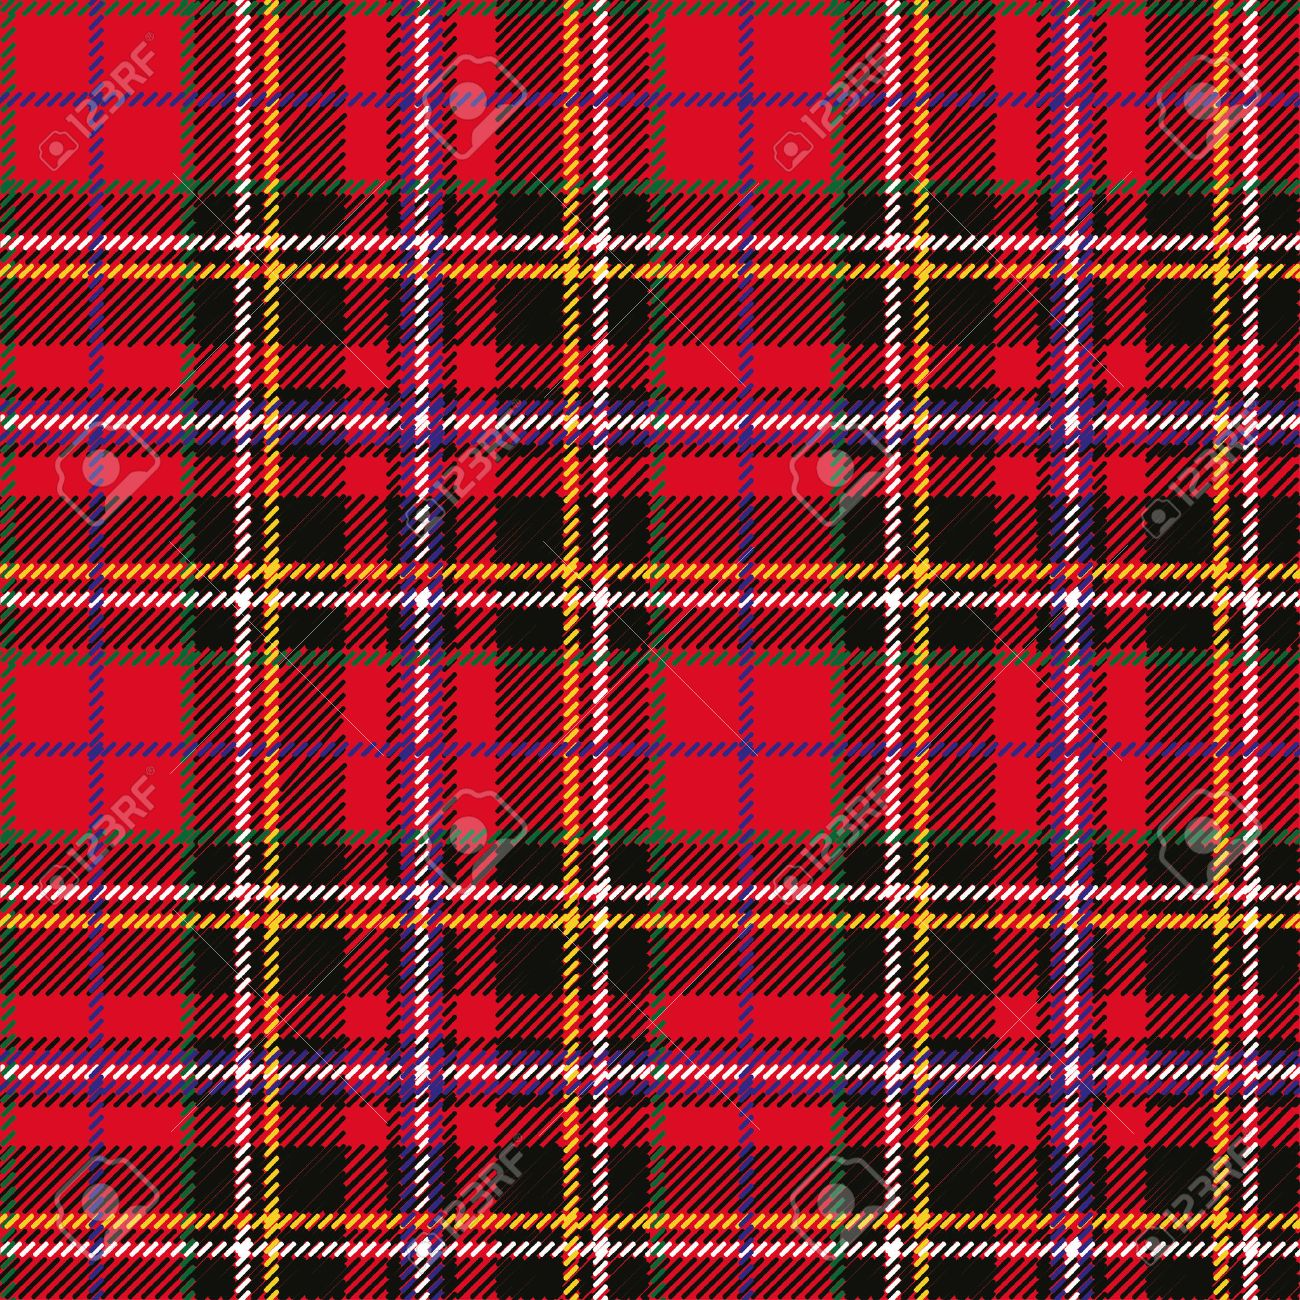 47842599 tartan plaid seamless pattern wallpaper wrapping paper textile retro style fashion illustration vect